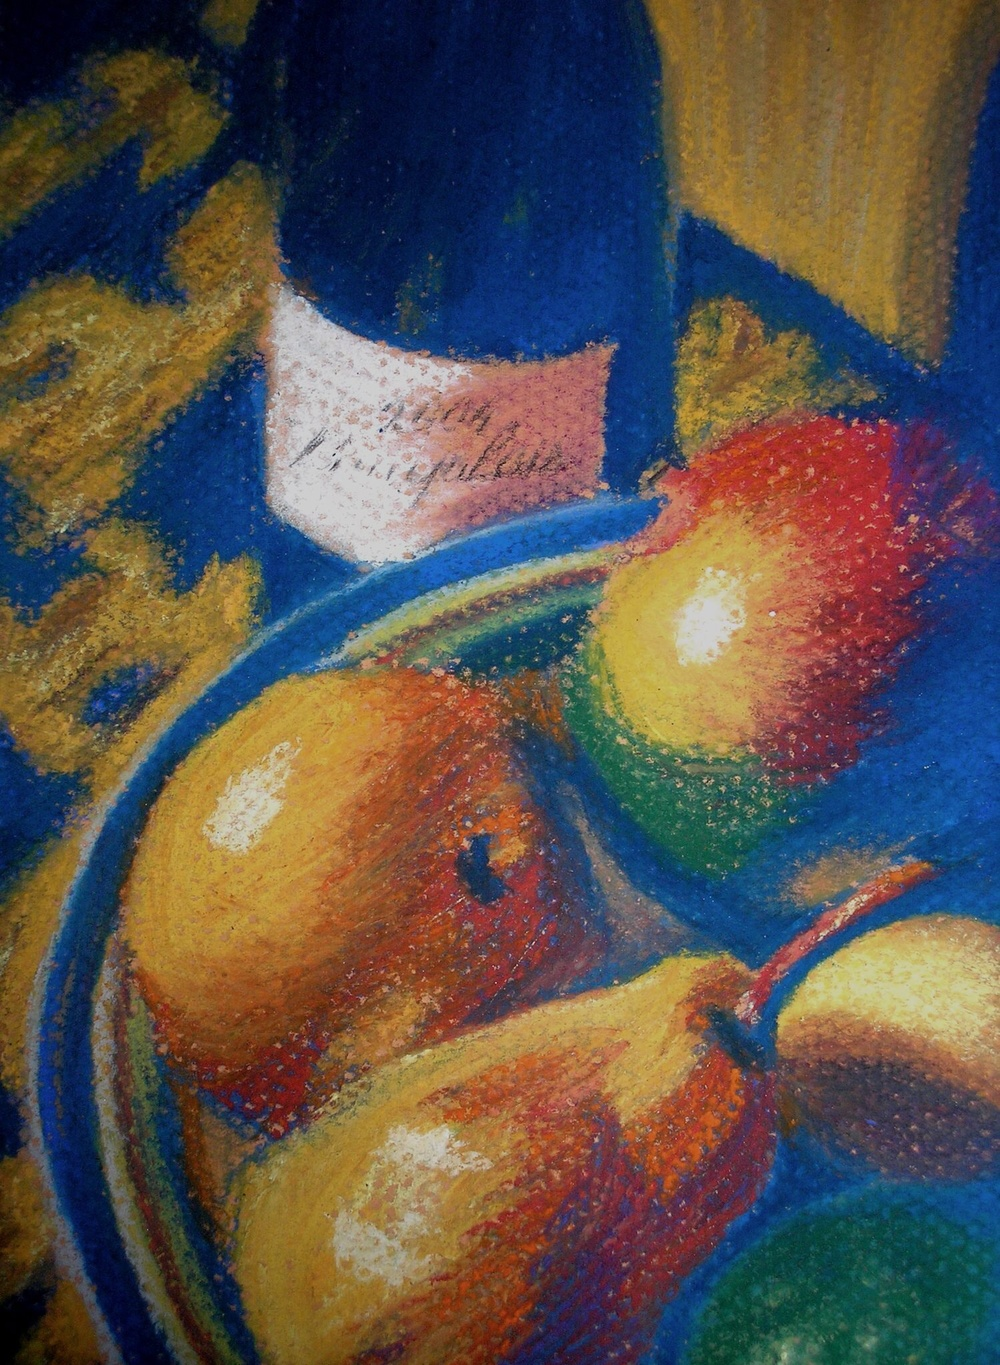 Wine and Fruit    9 in x 12 in  pastel on pastel paper